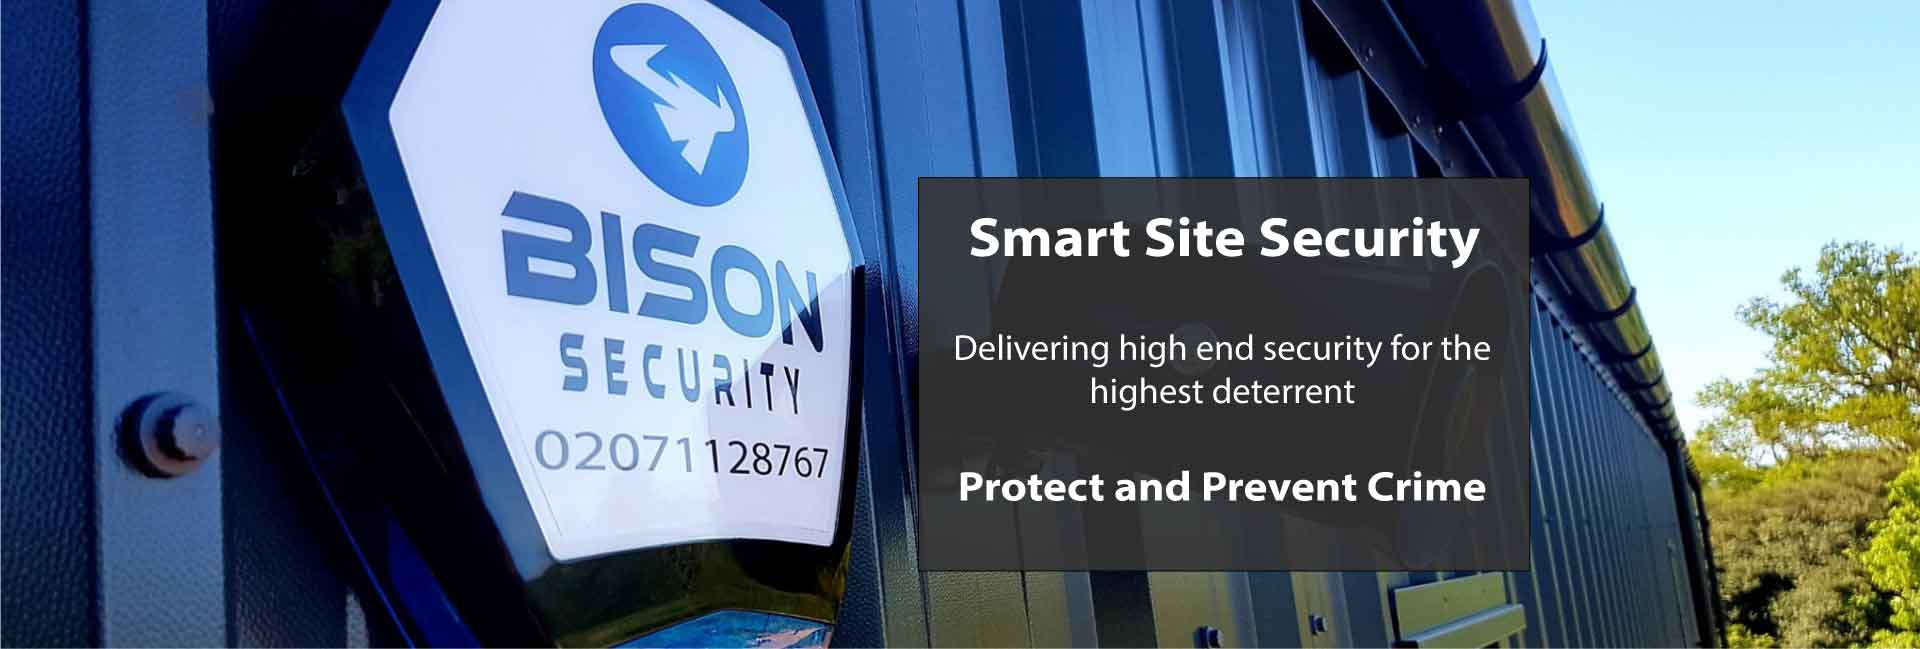 Bison Smart Site Security Protecting Buildings